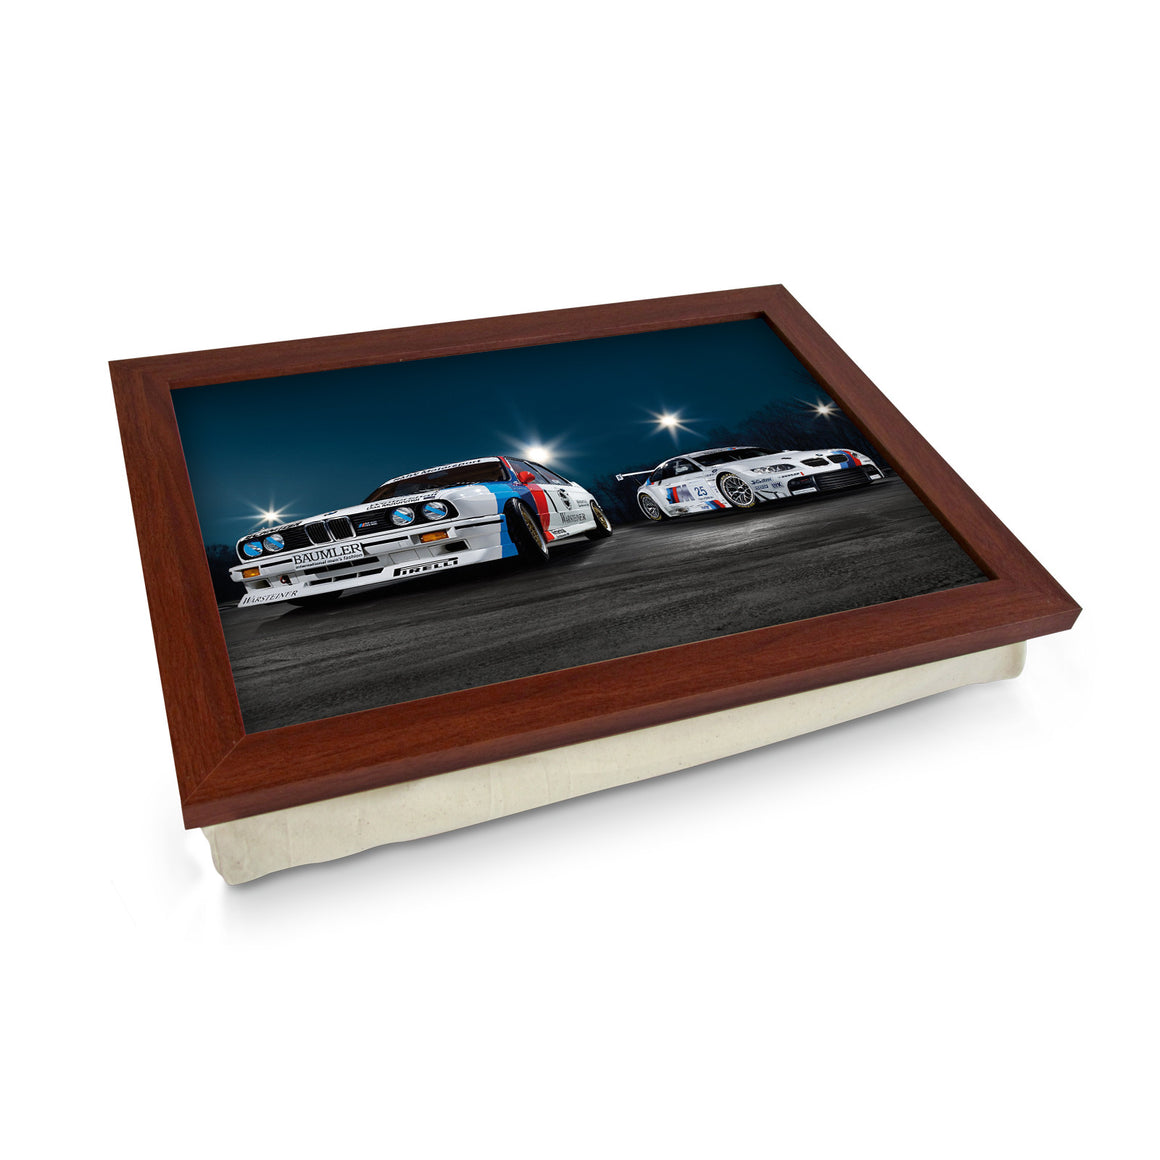 BMW Classic Vs Modern Race Cars Lap Tray - L0729